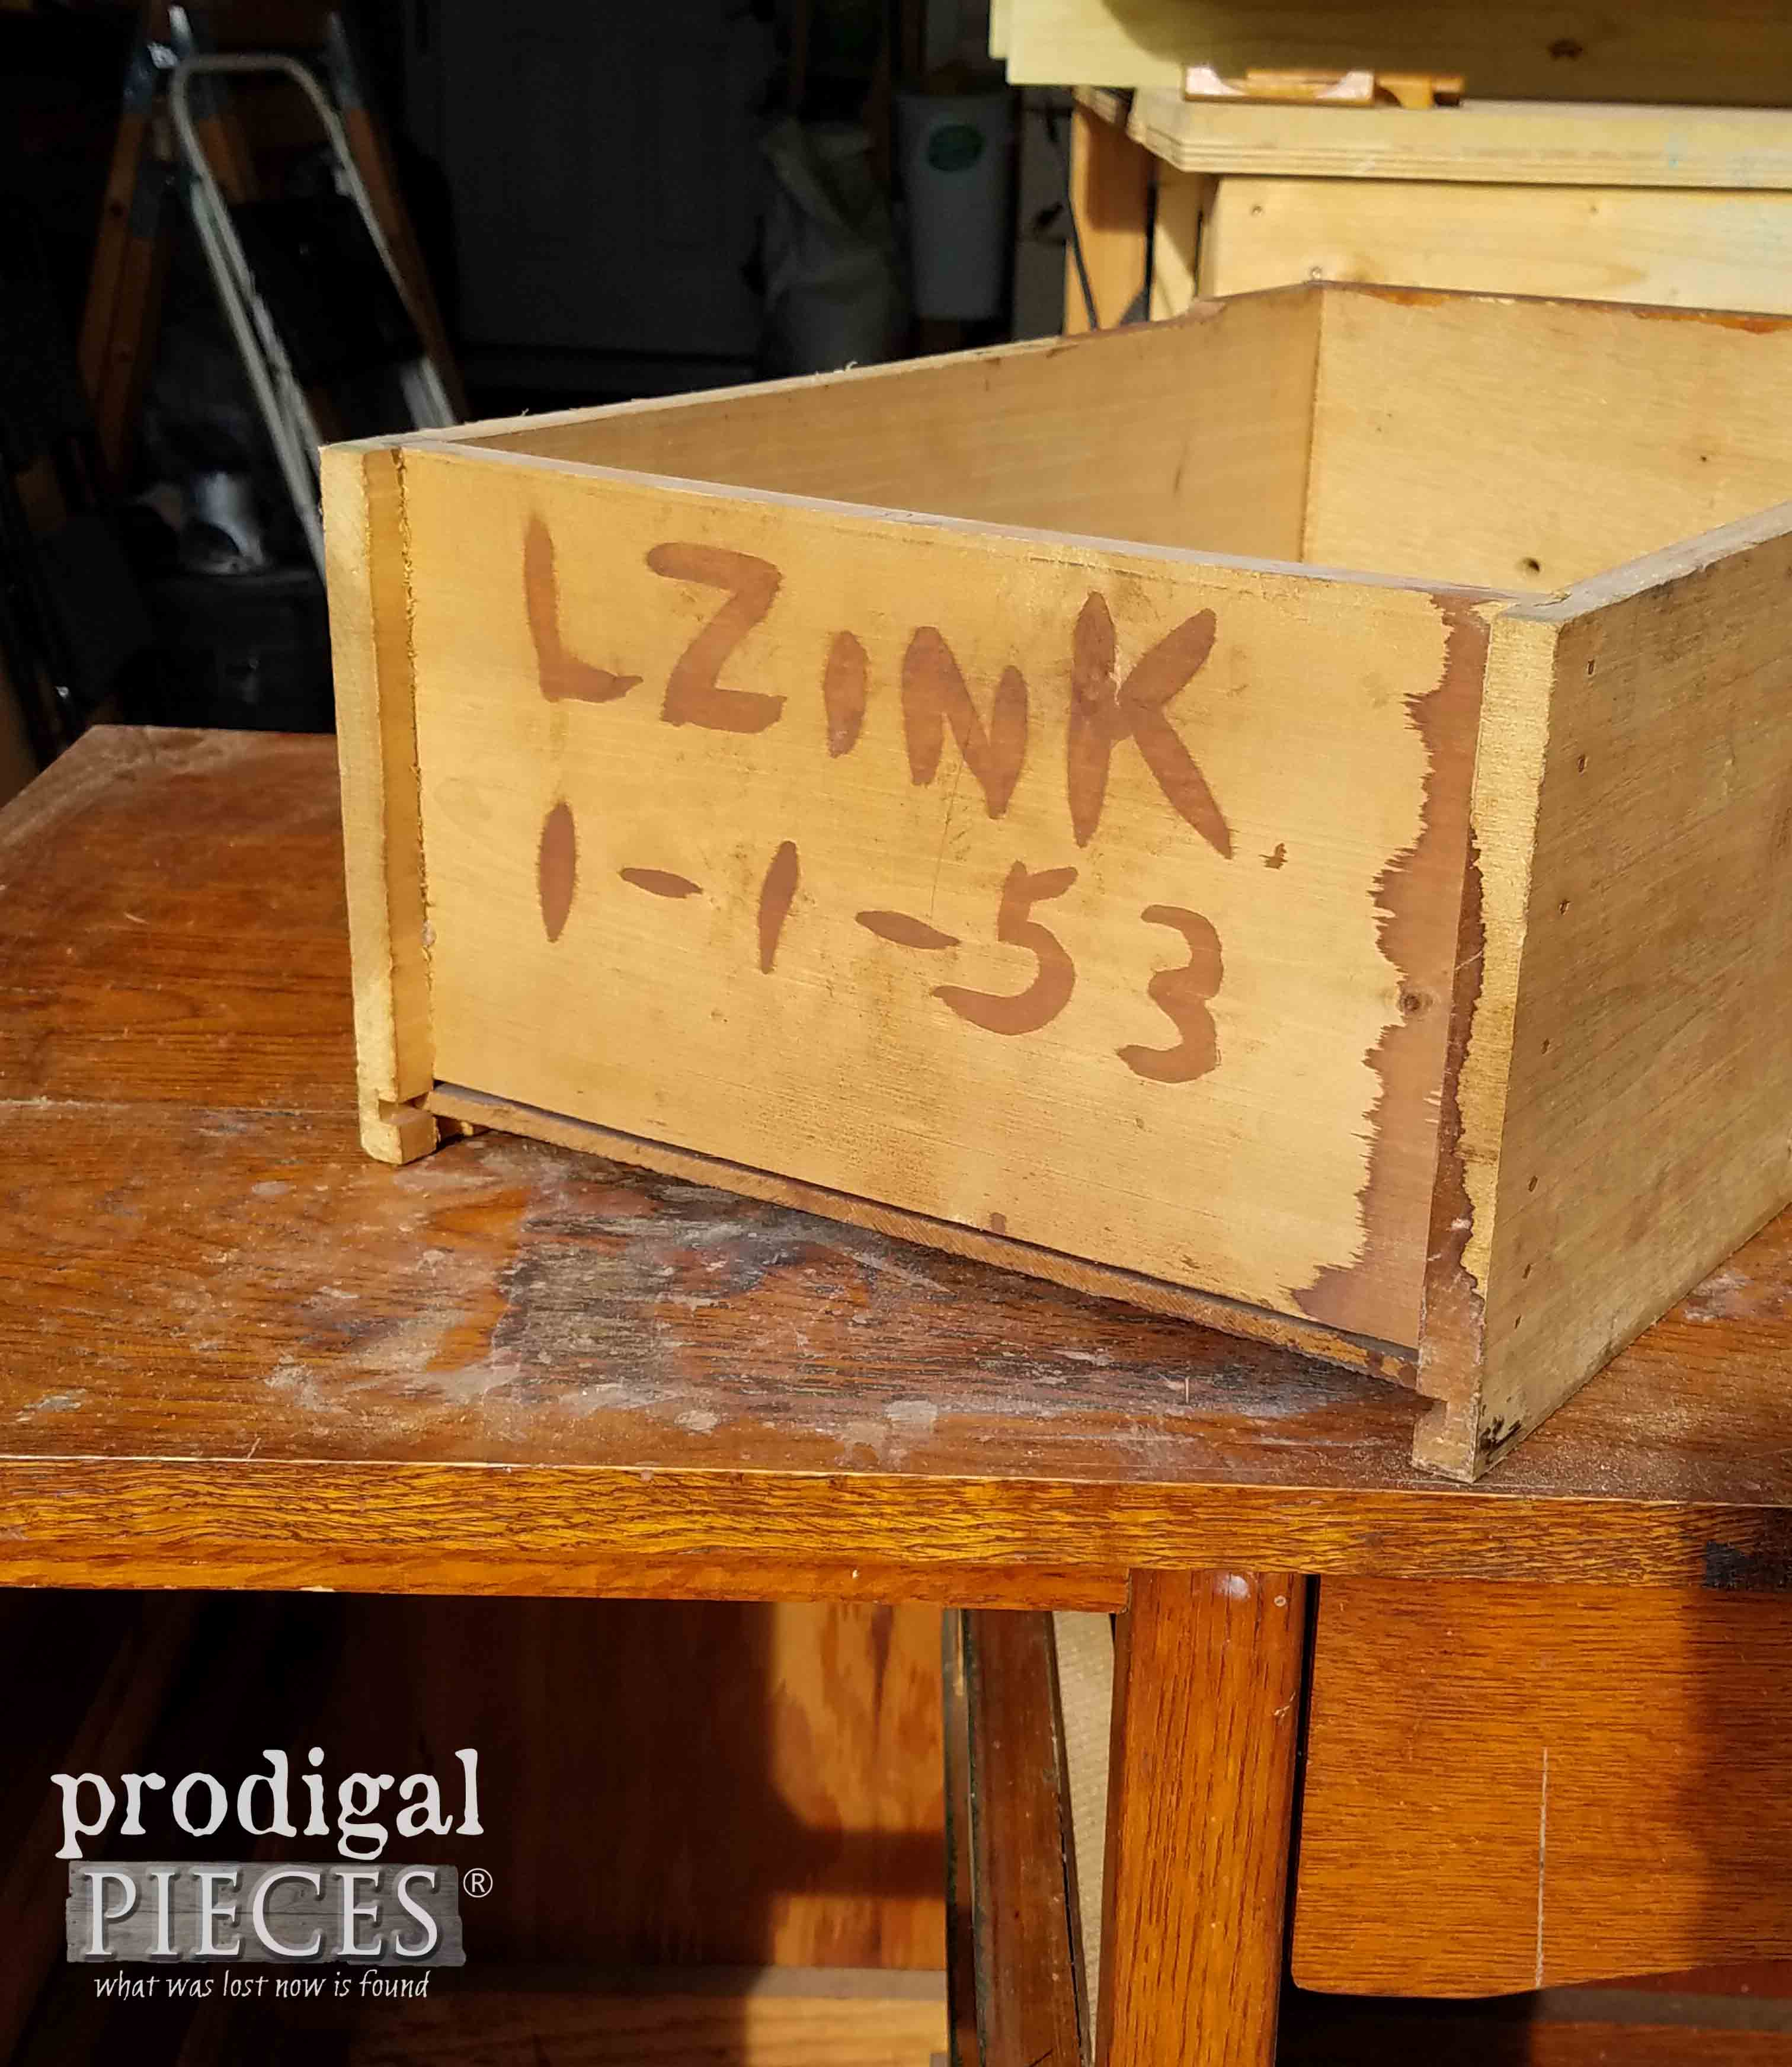 Hand Writing on Desk Drawer | Prodigal Pieces | prodigalpieces.com